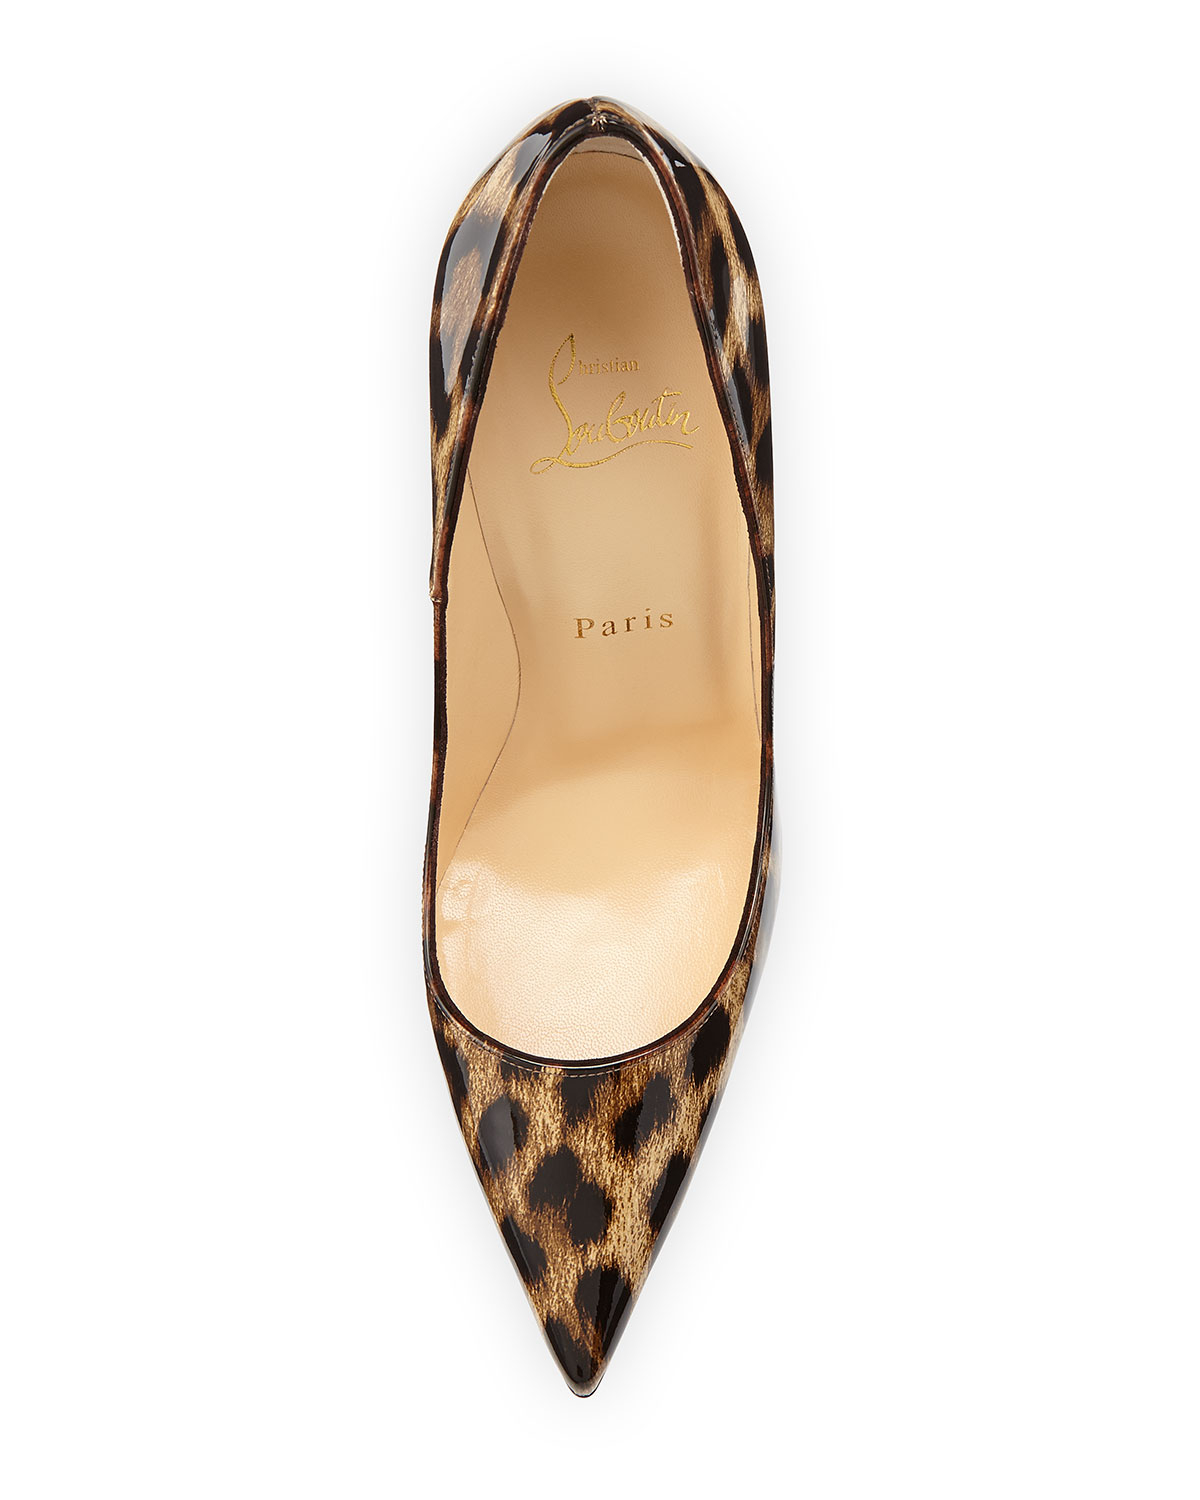 separation shoes 48b06 a42a4 Christian Louboutin So Kate Leopard-Print Patent Red Sole ...